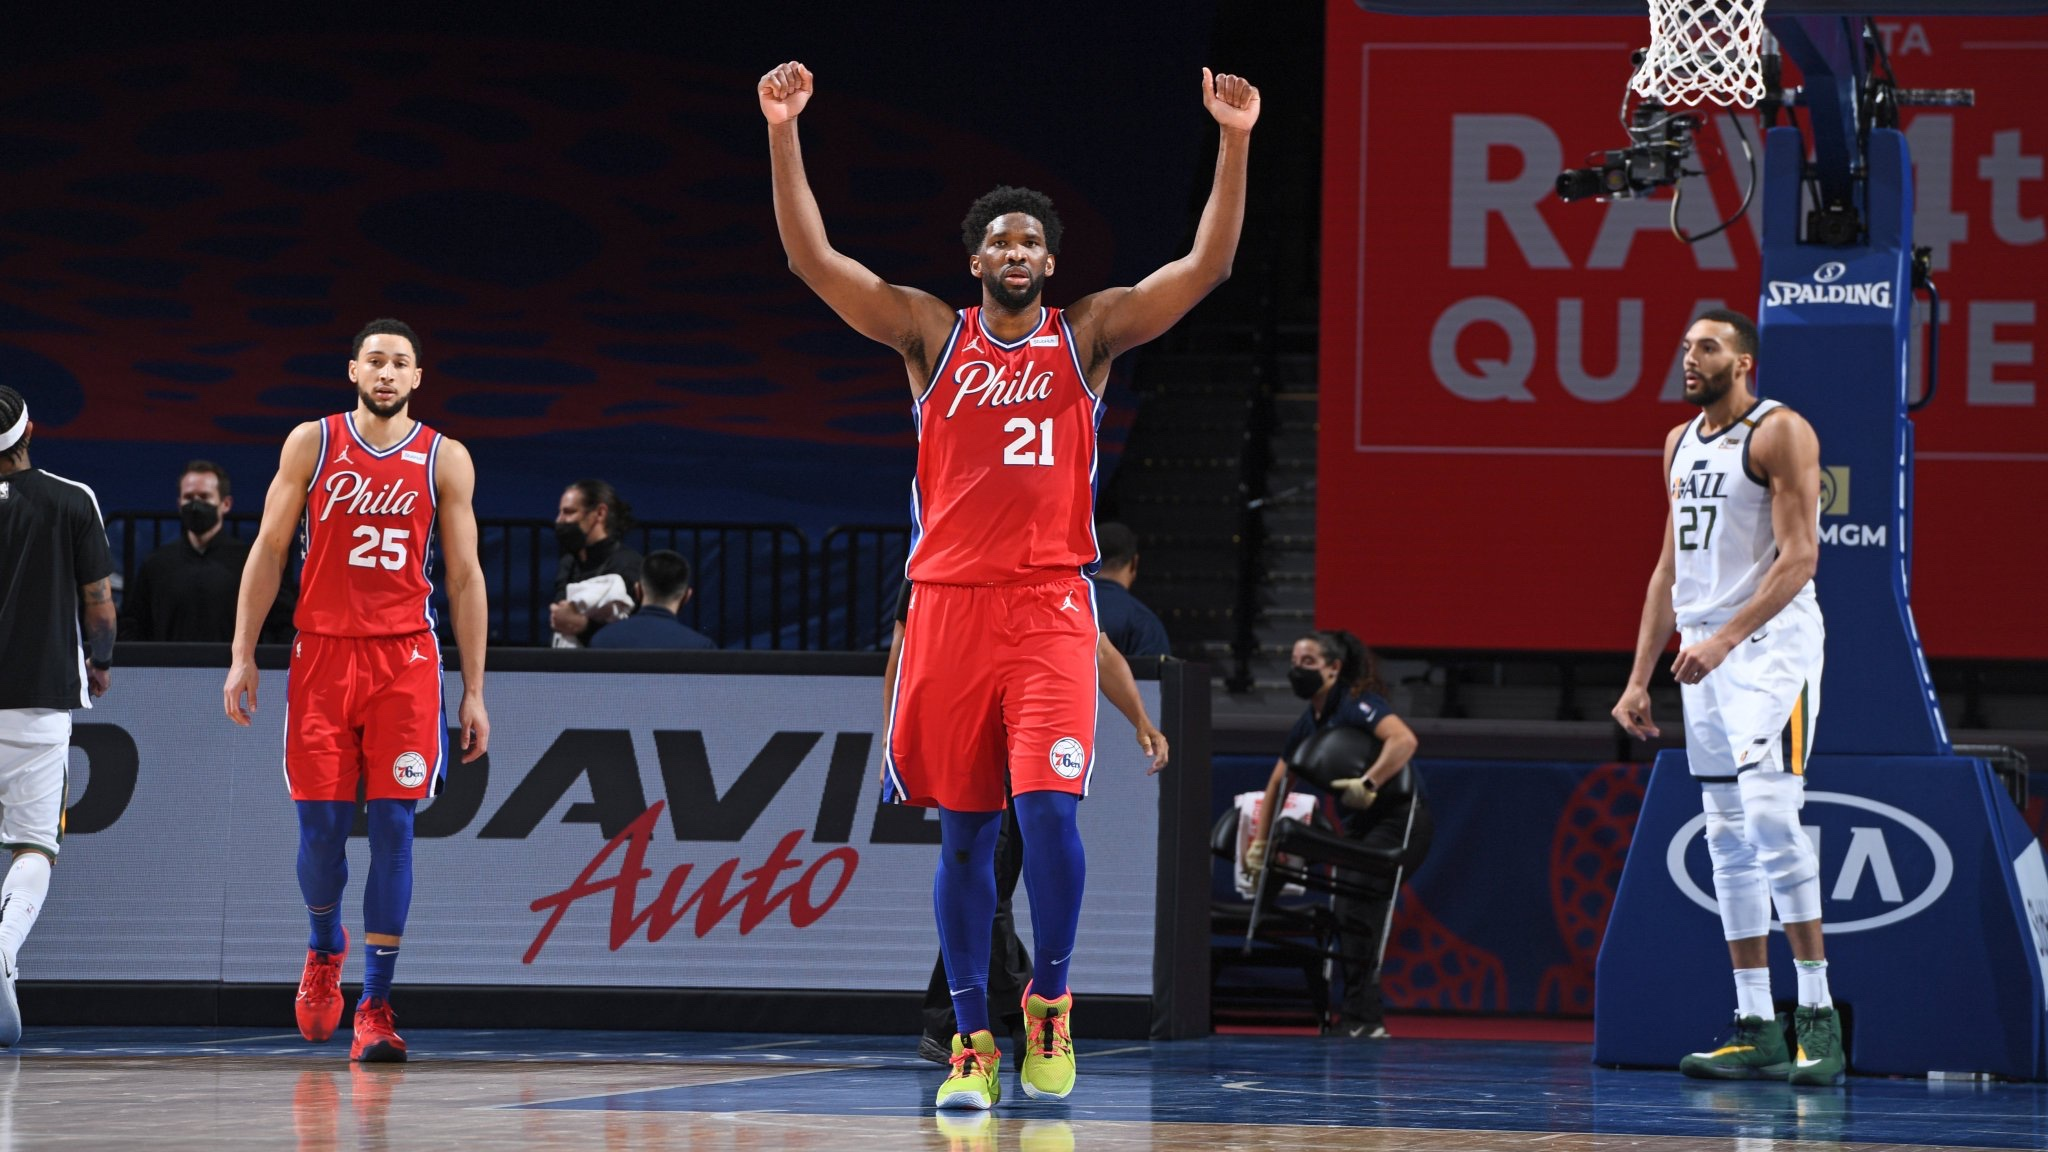 Five Thirty Eight Gives The Sixers The Best Chance To Make The Finals